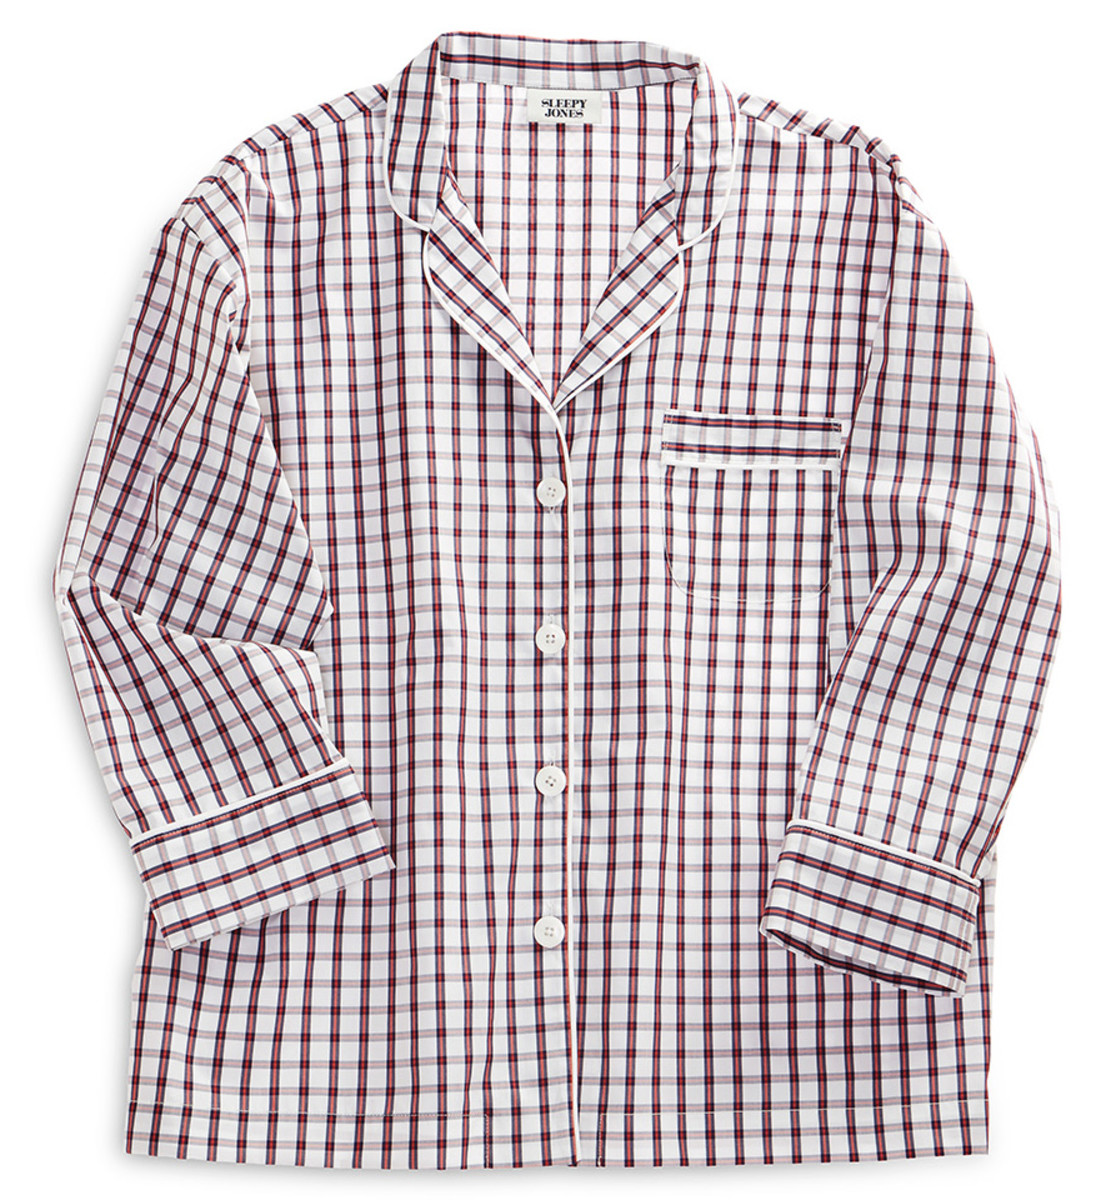 Trade in your booger-stained sweats for some upscale PJs. Marina Pajama Shirt, $68.60 with code SNOWDAY30 (from $168), available at Sleepy Jones.